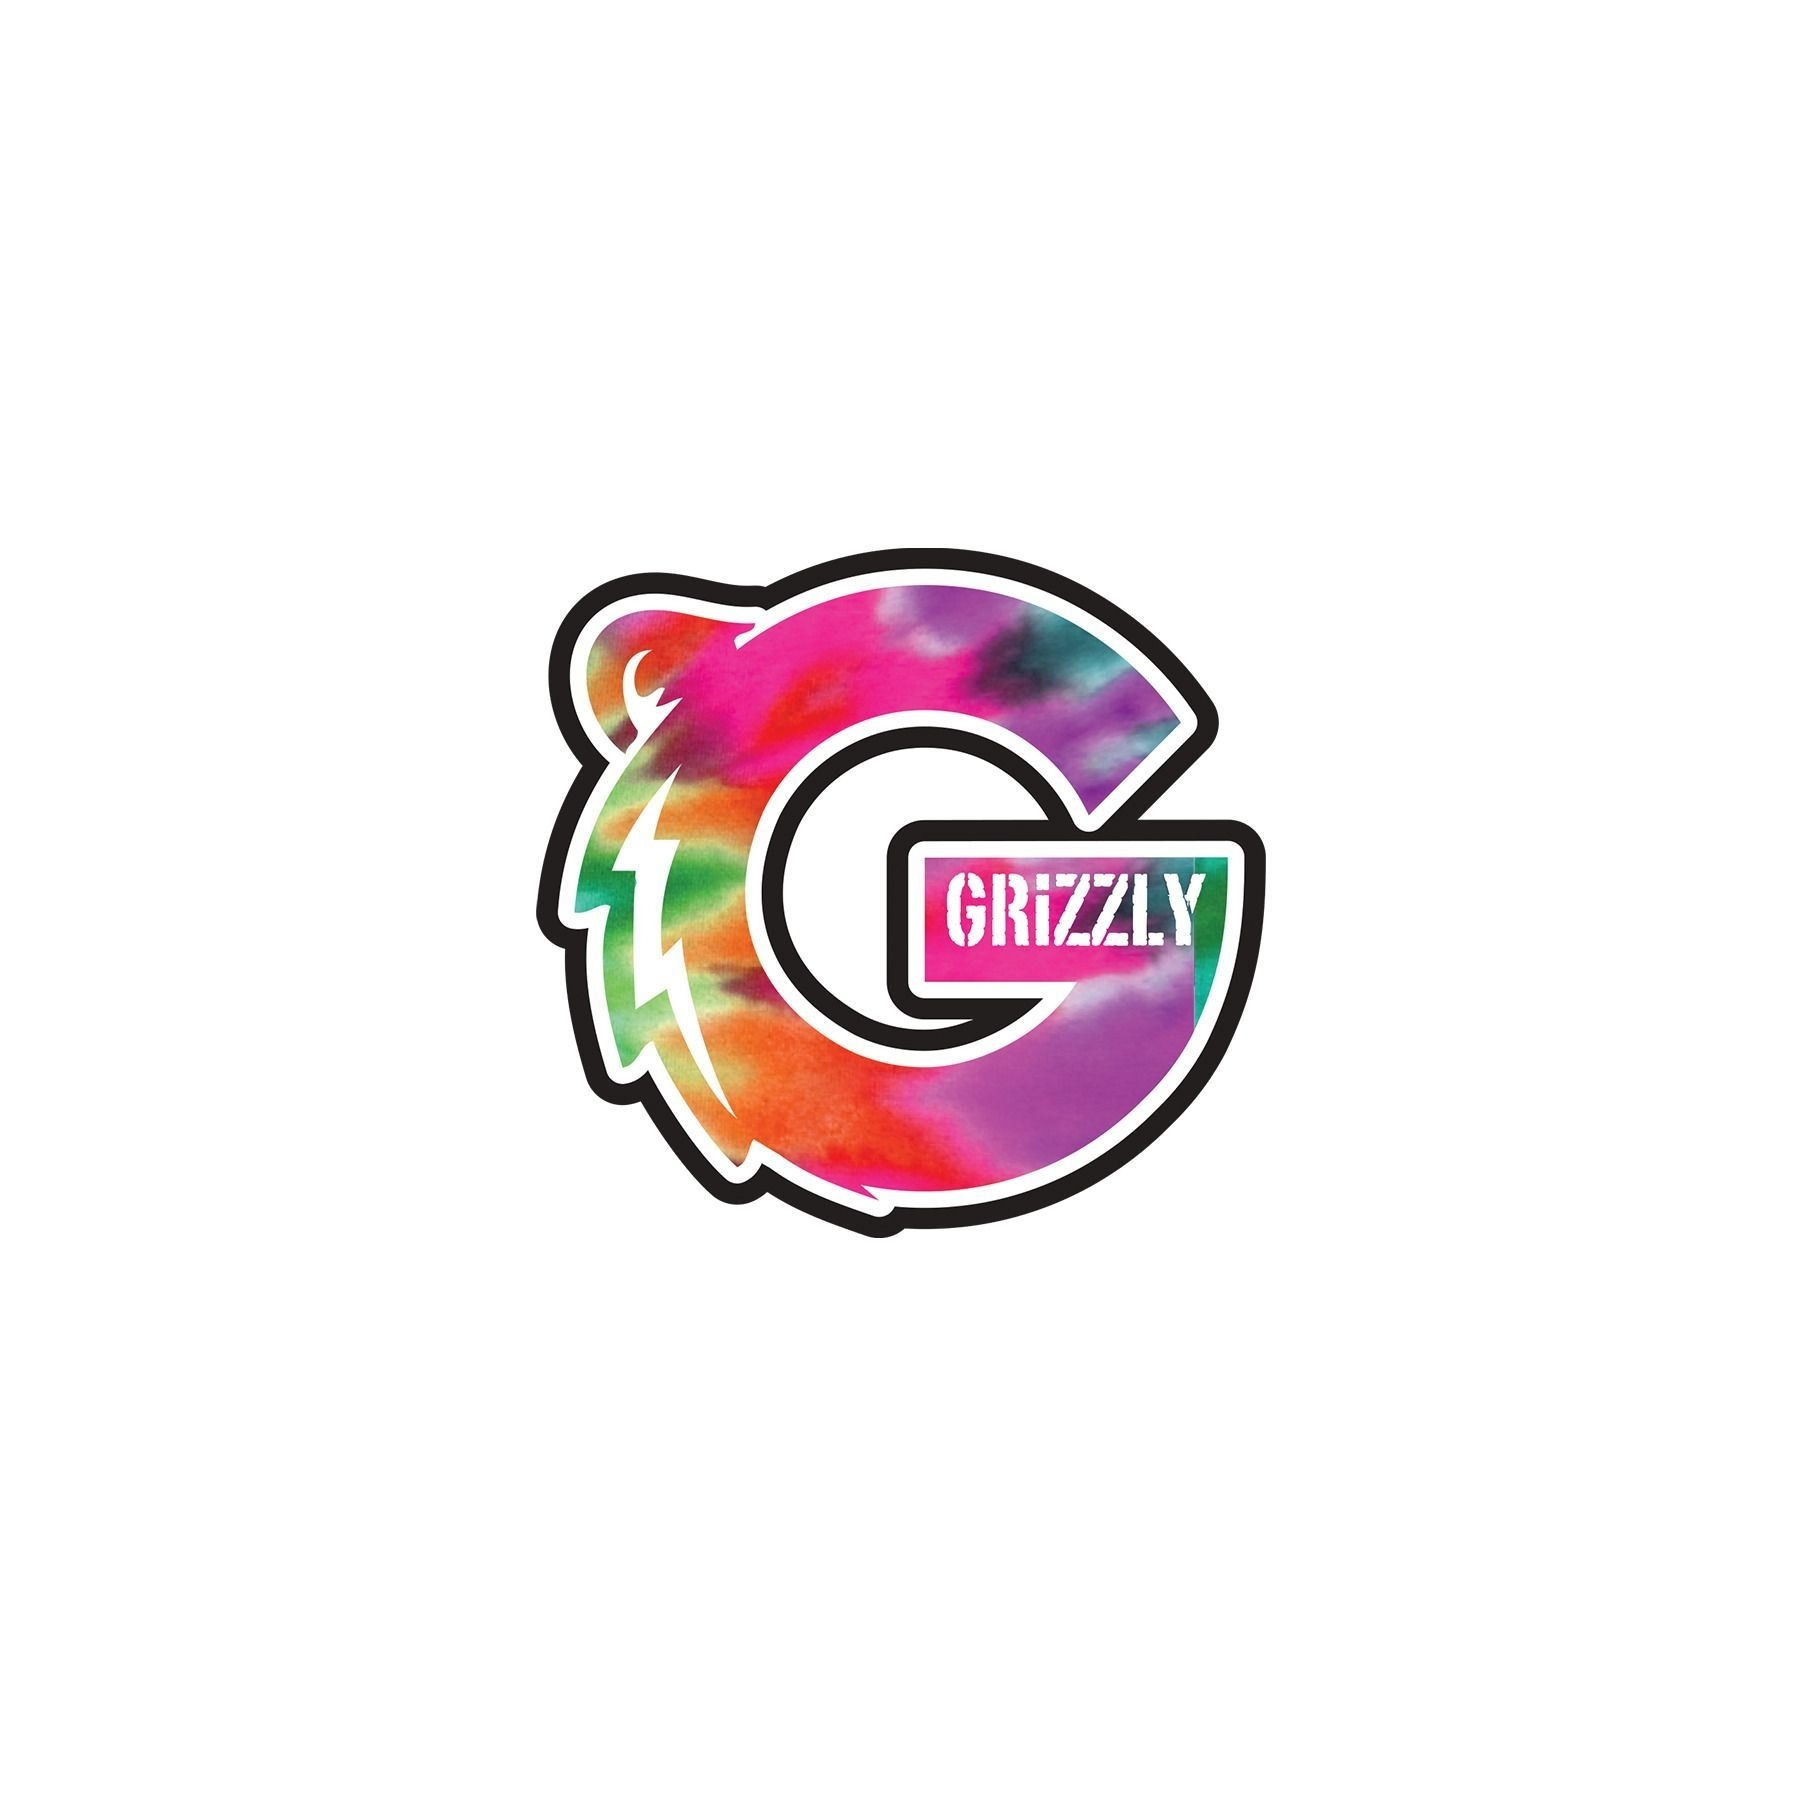 grizzly grip wallpapers - wallpaper cave | all wallpapers